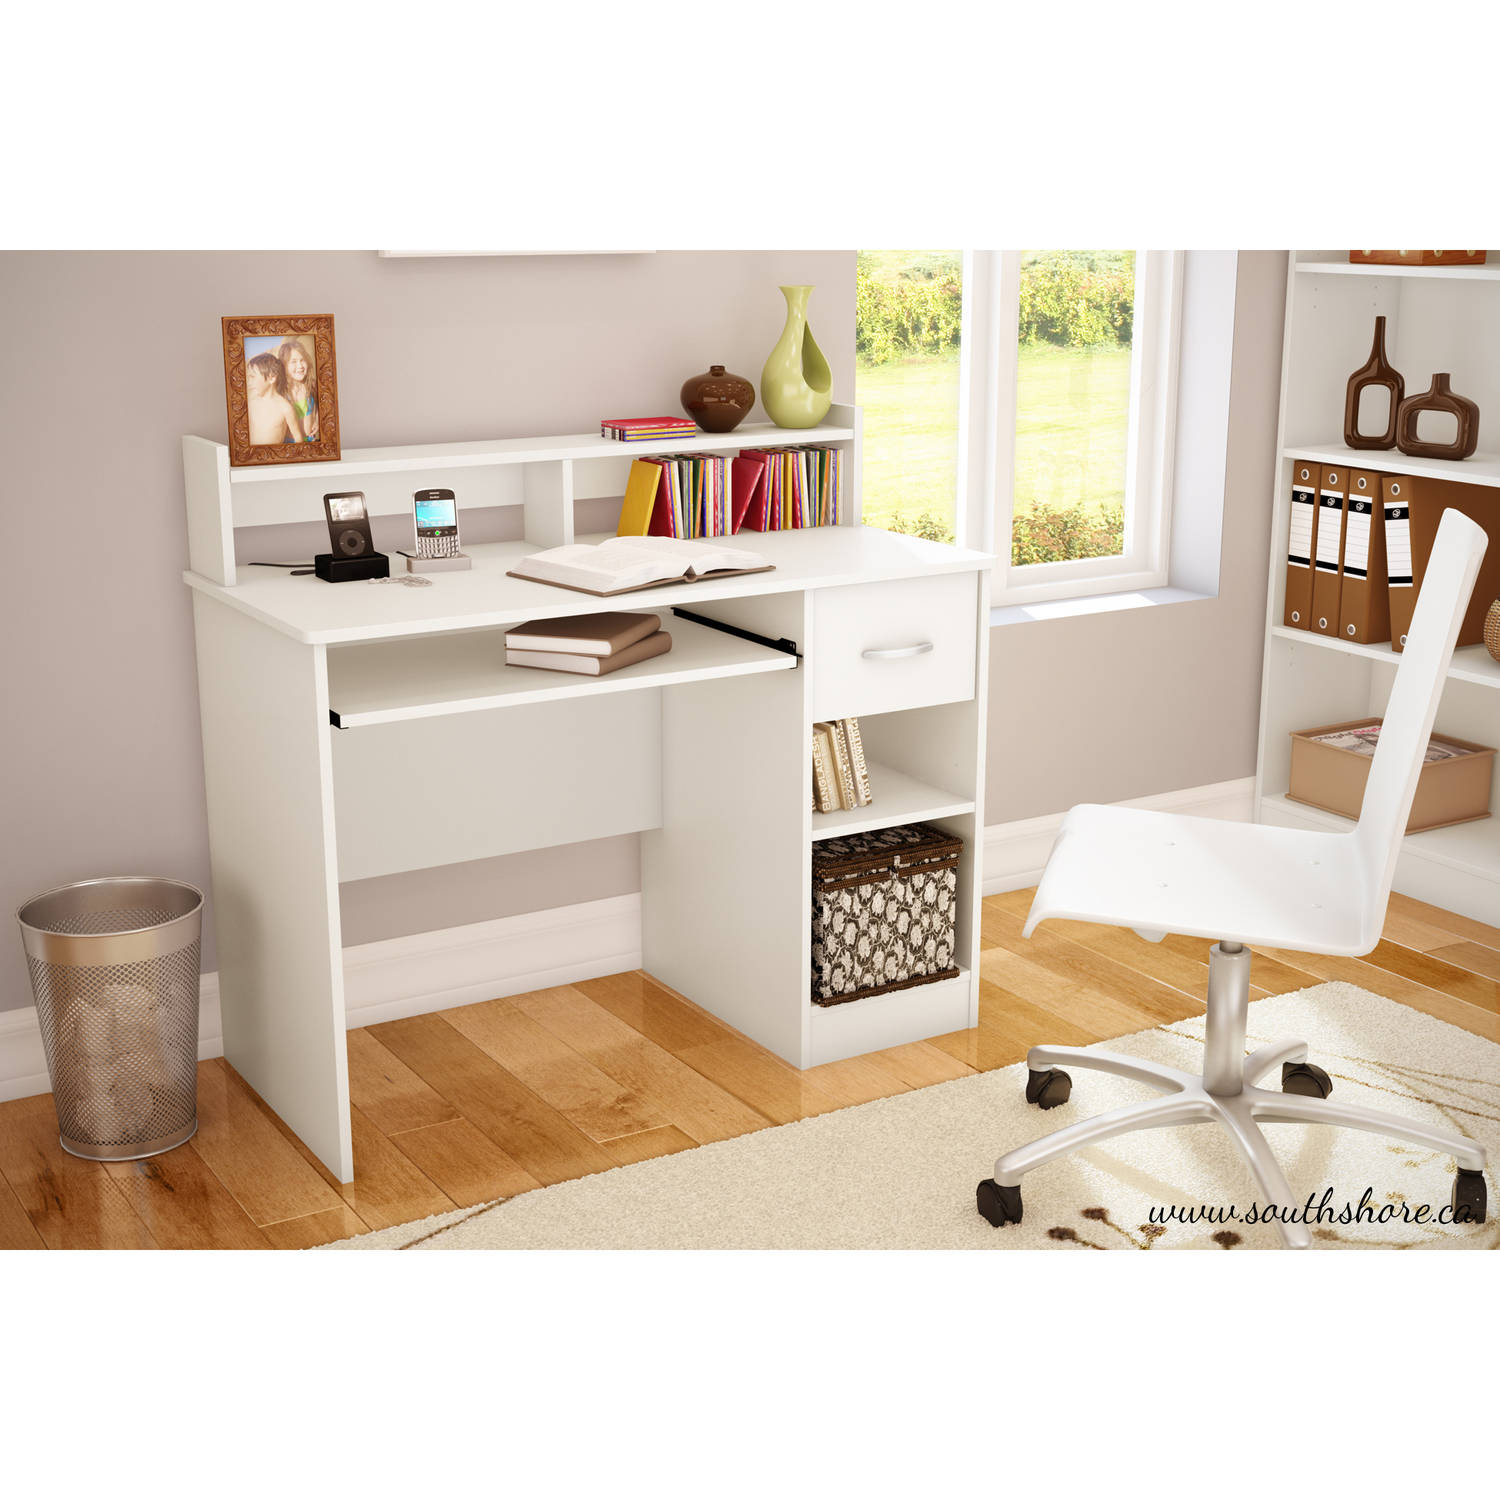 South shore smart basics small desk multiple finishes ebay for South shore artwork craft table with storage pure white